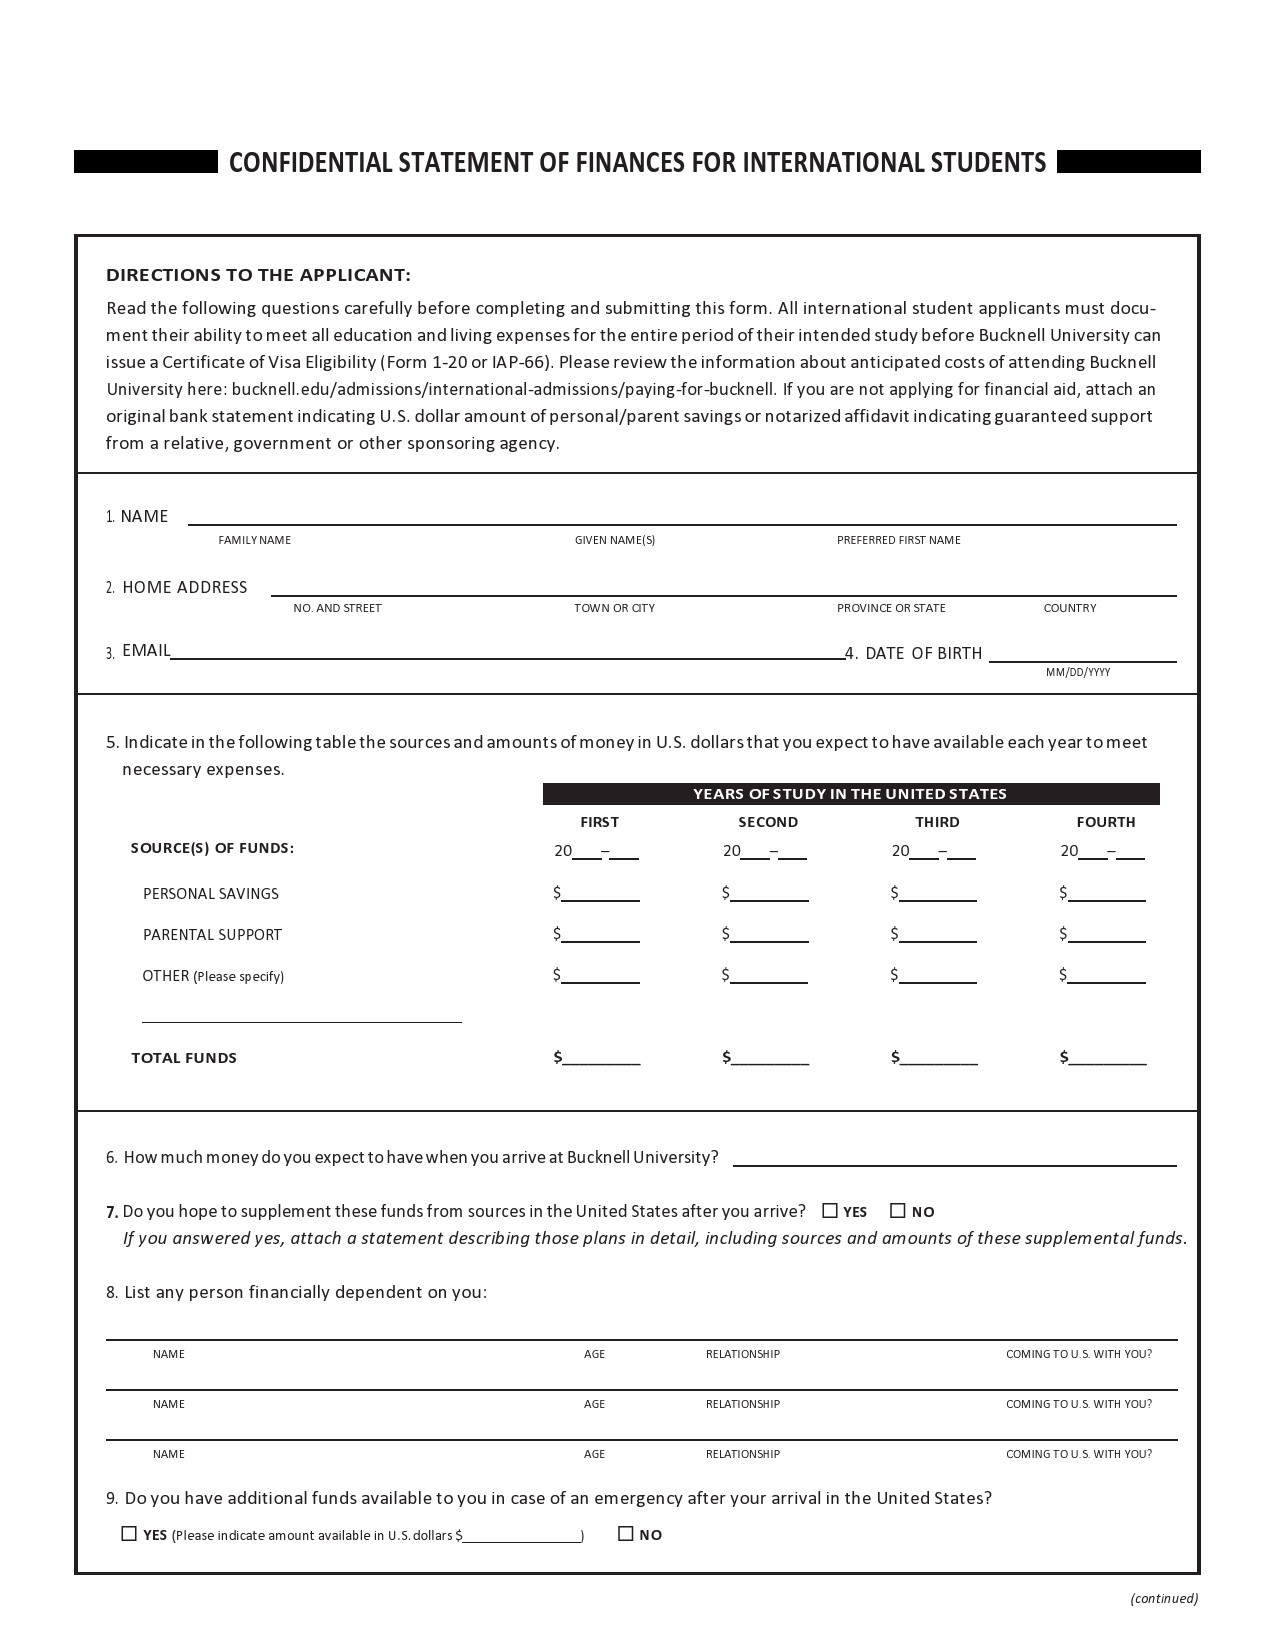 Free confidentiality statement 30